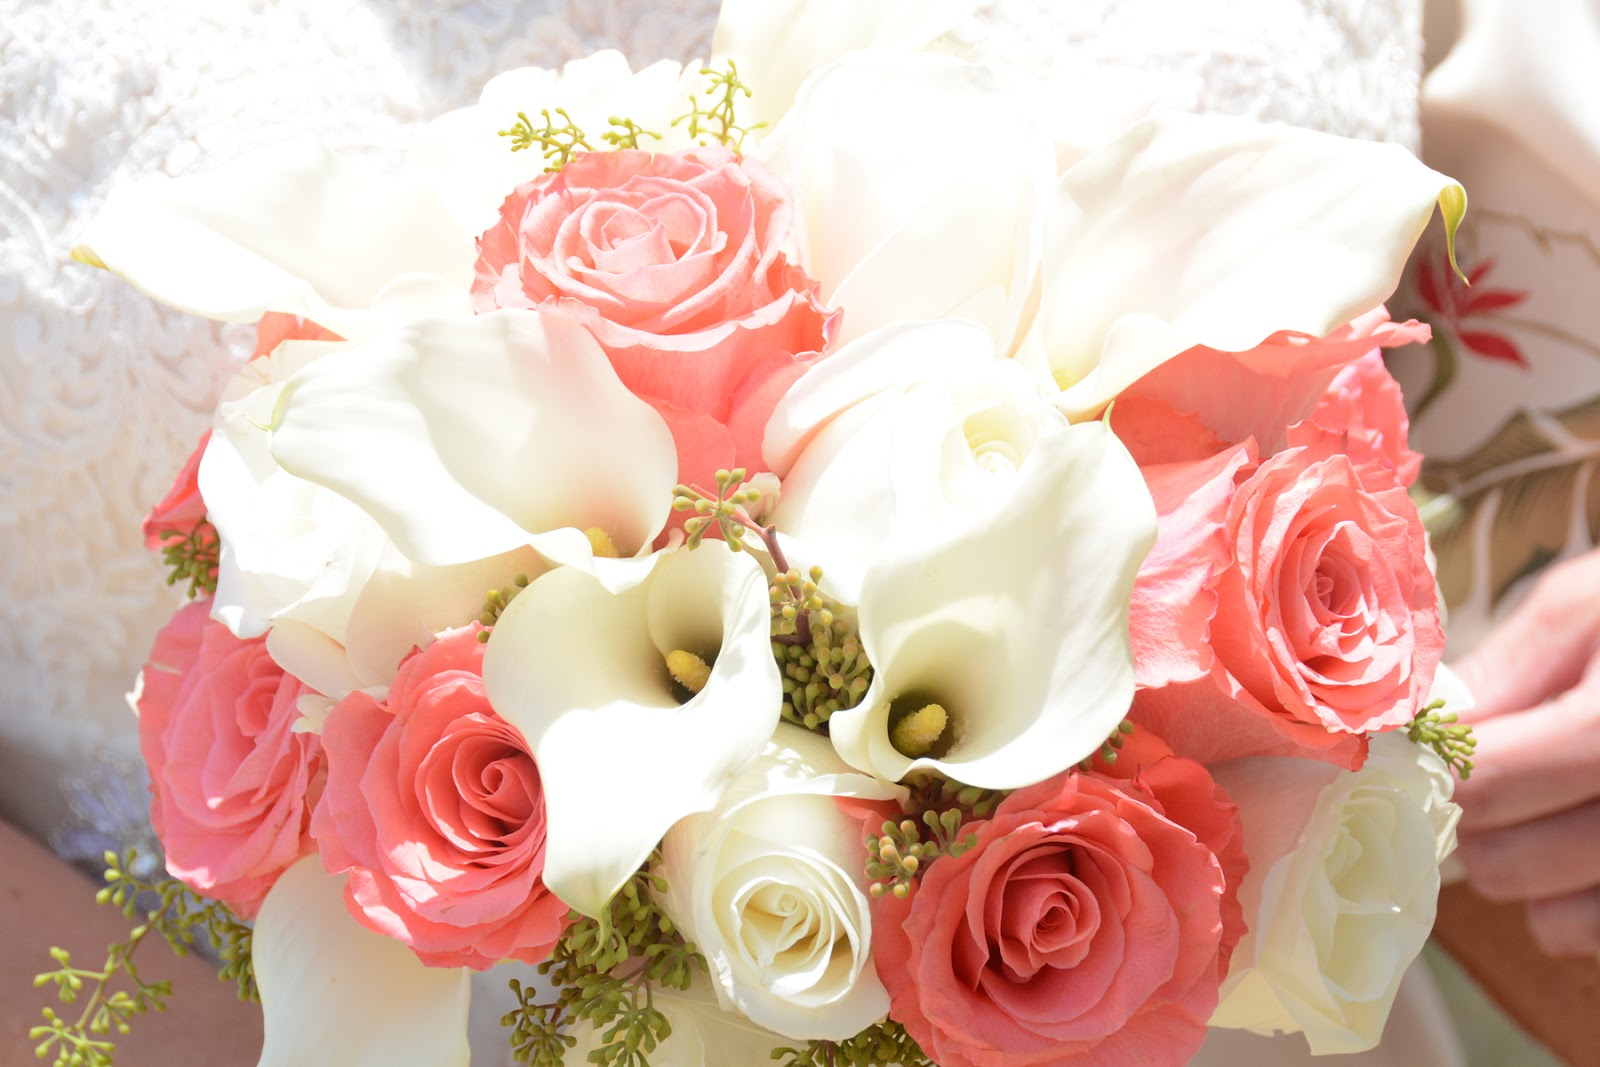 Wedding Flowers Roses And Lilies : Hawaii wedding flowers coral white calla lily rose bouquet